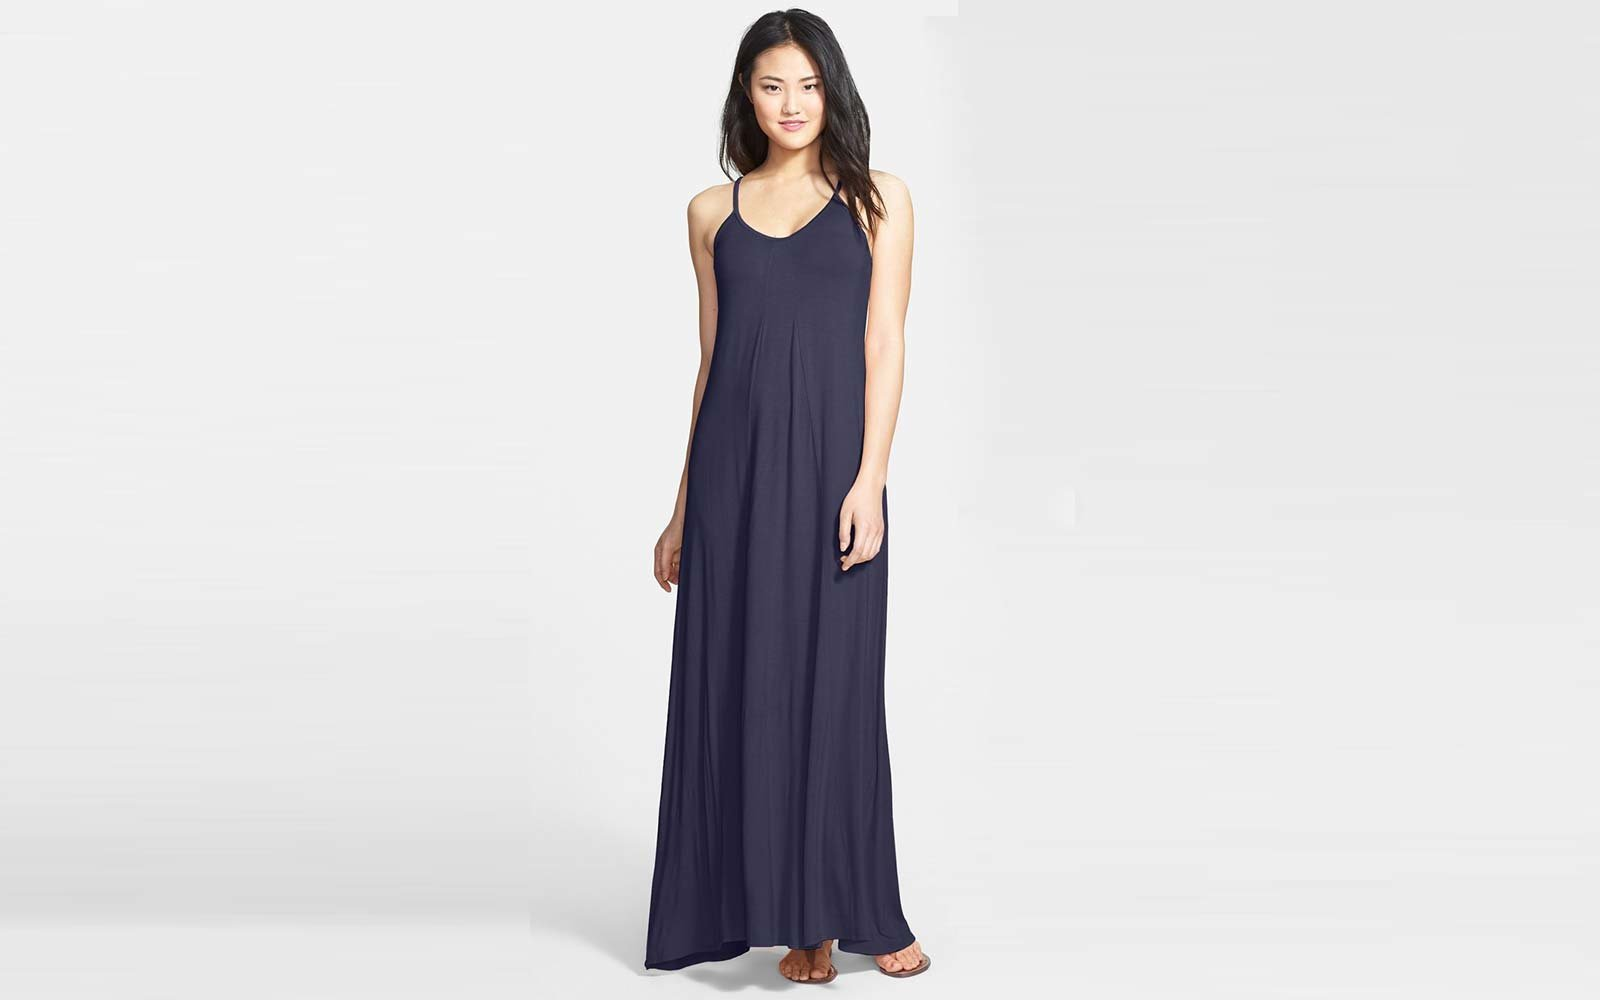 c90639d8f5c Loveappella Maxi Dress in Midnight Blue